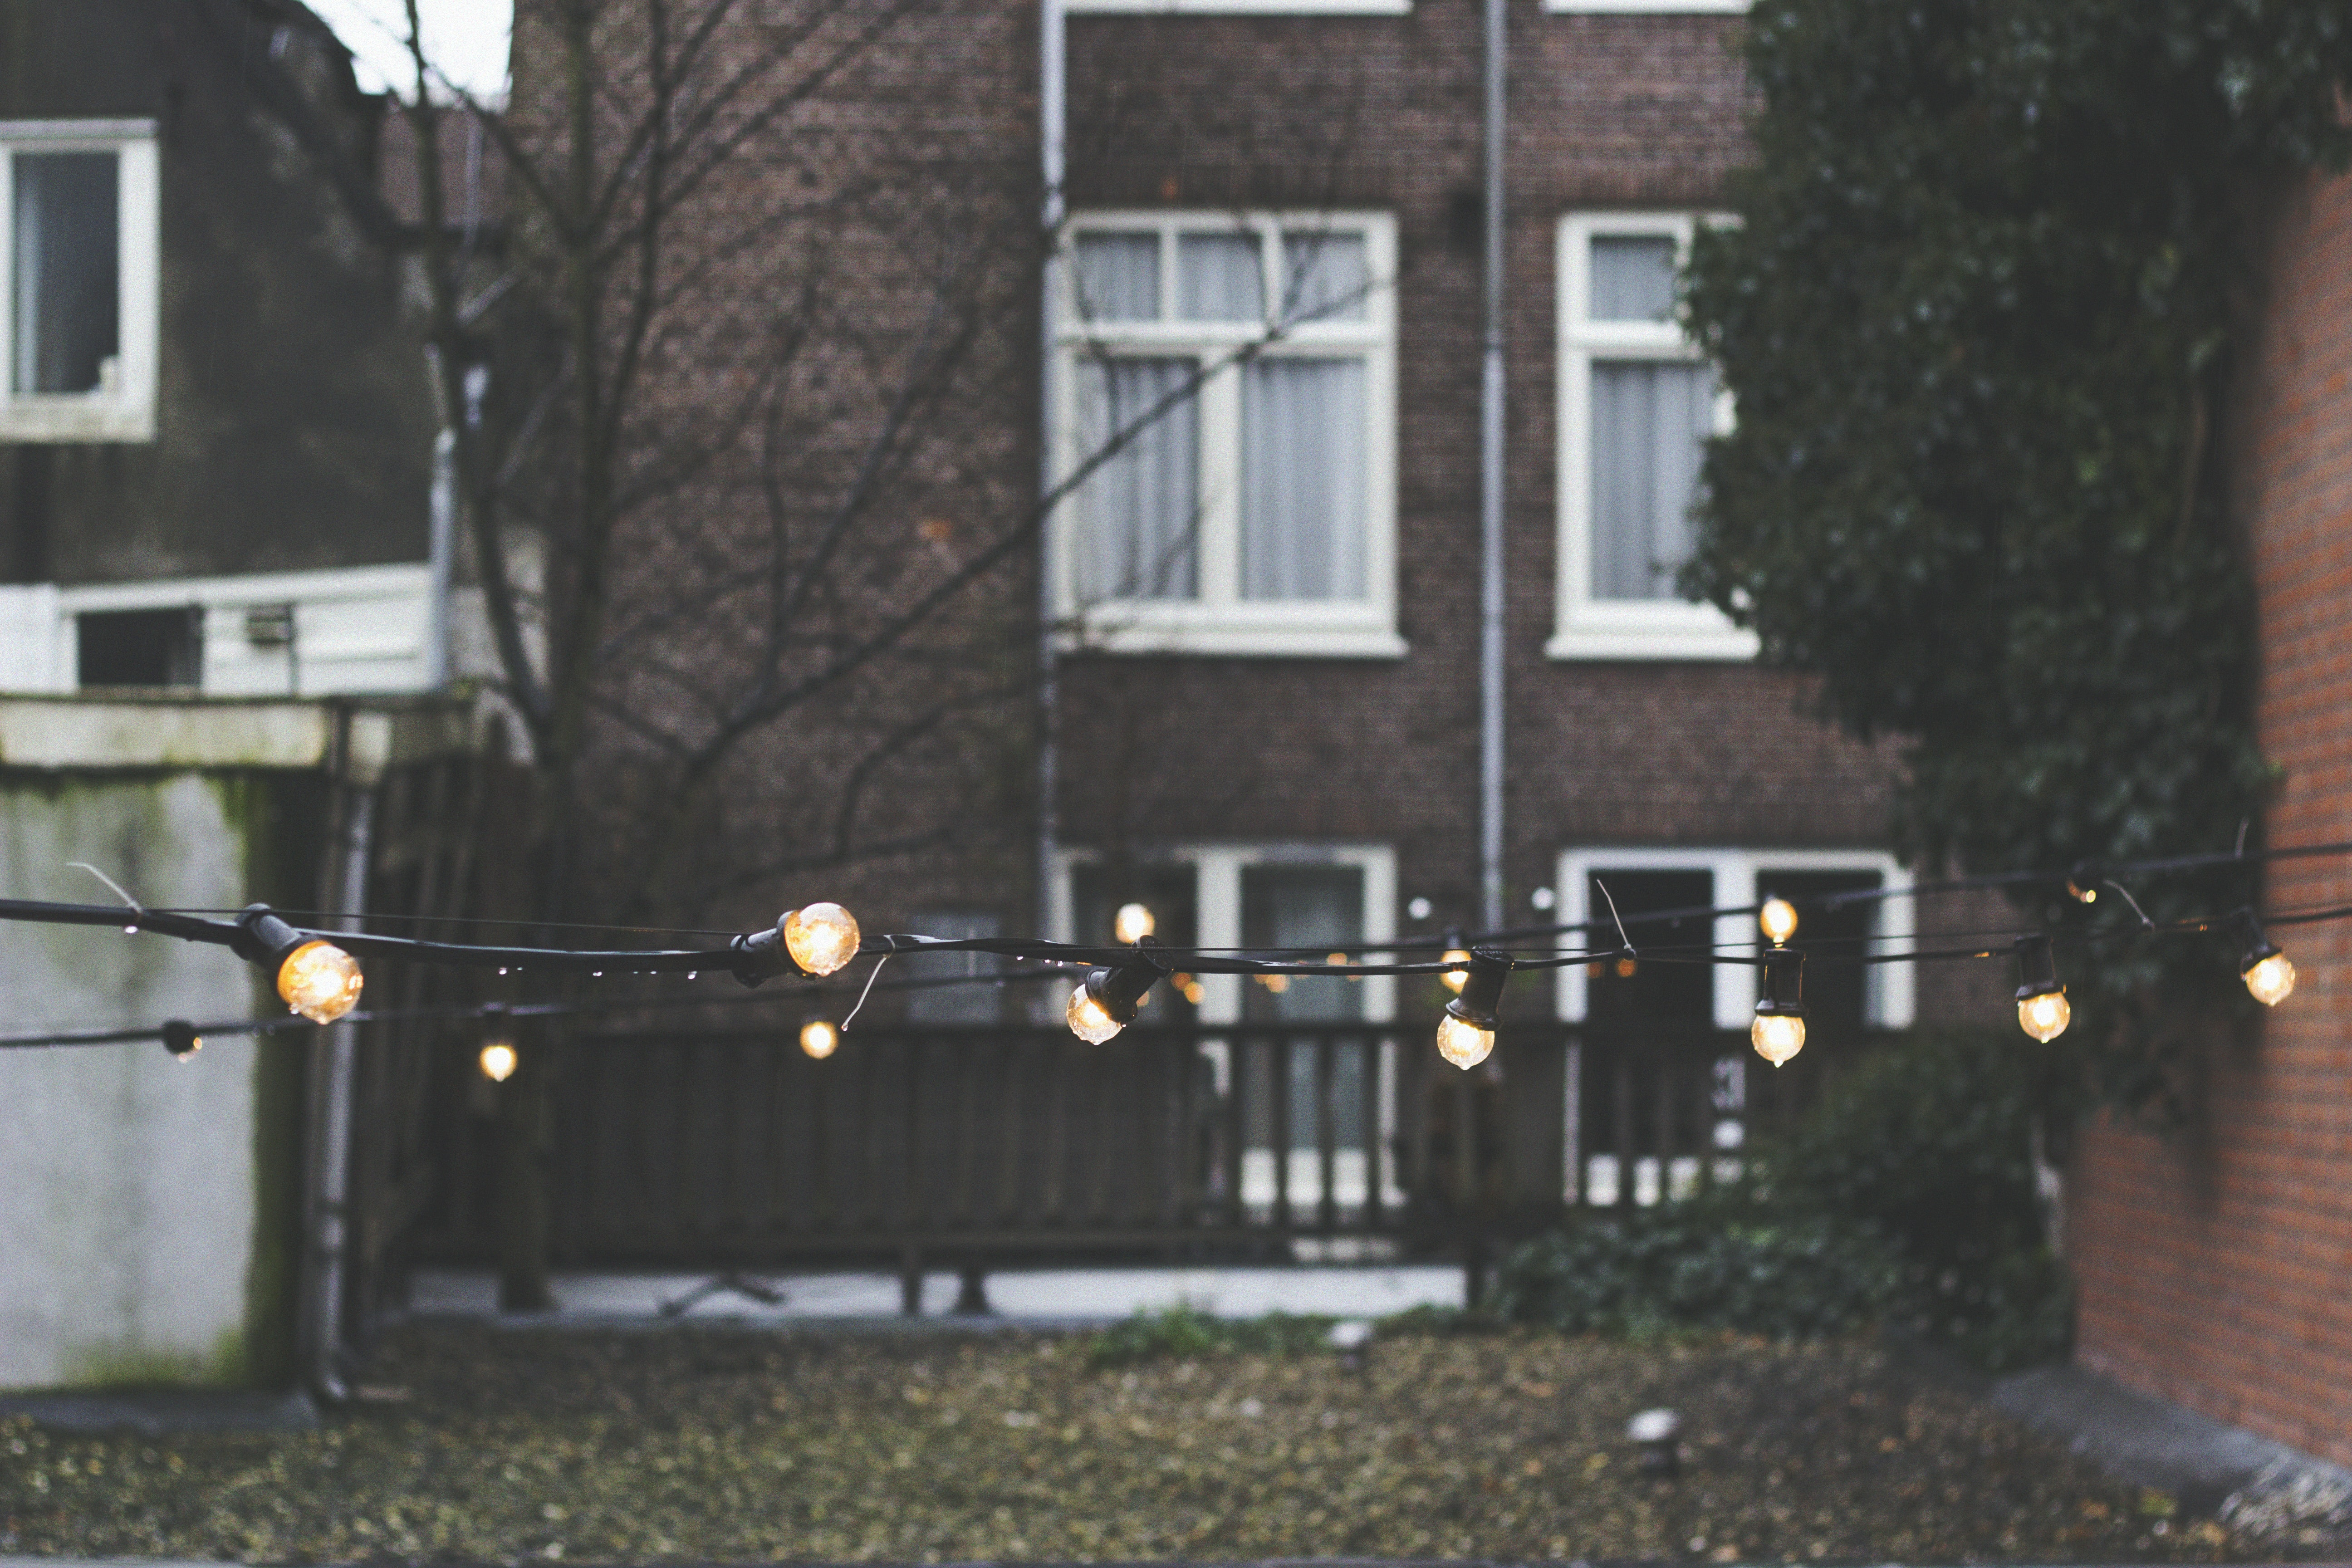 String lights in the back of an urban yard with a brick house and fences in the background